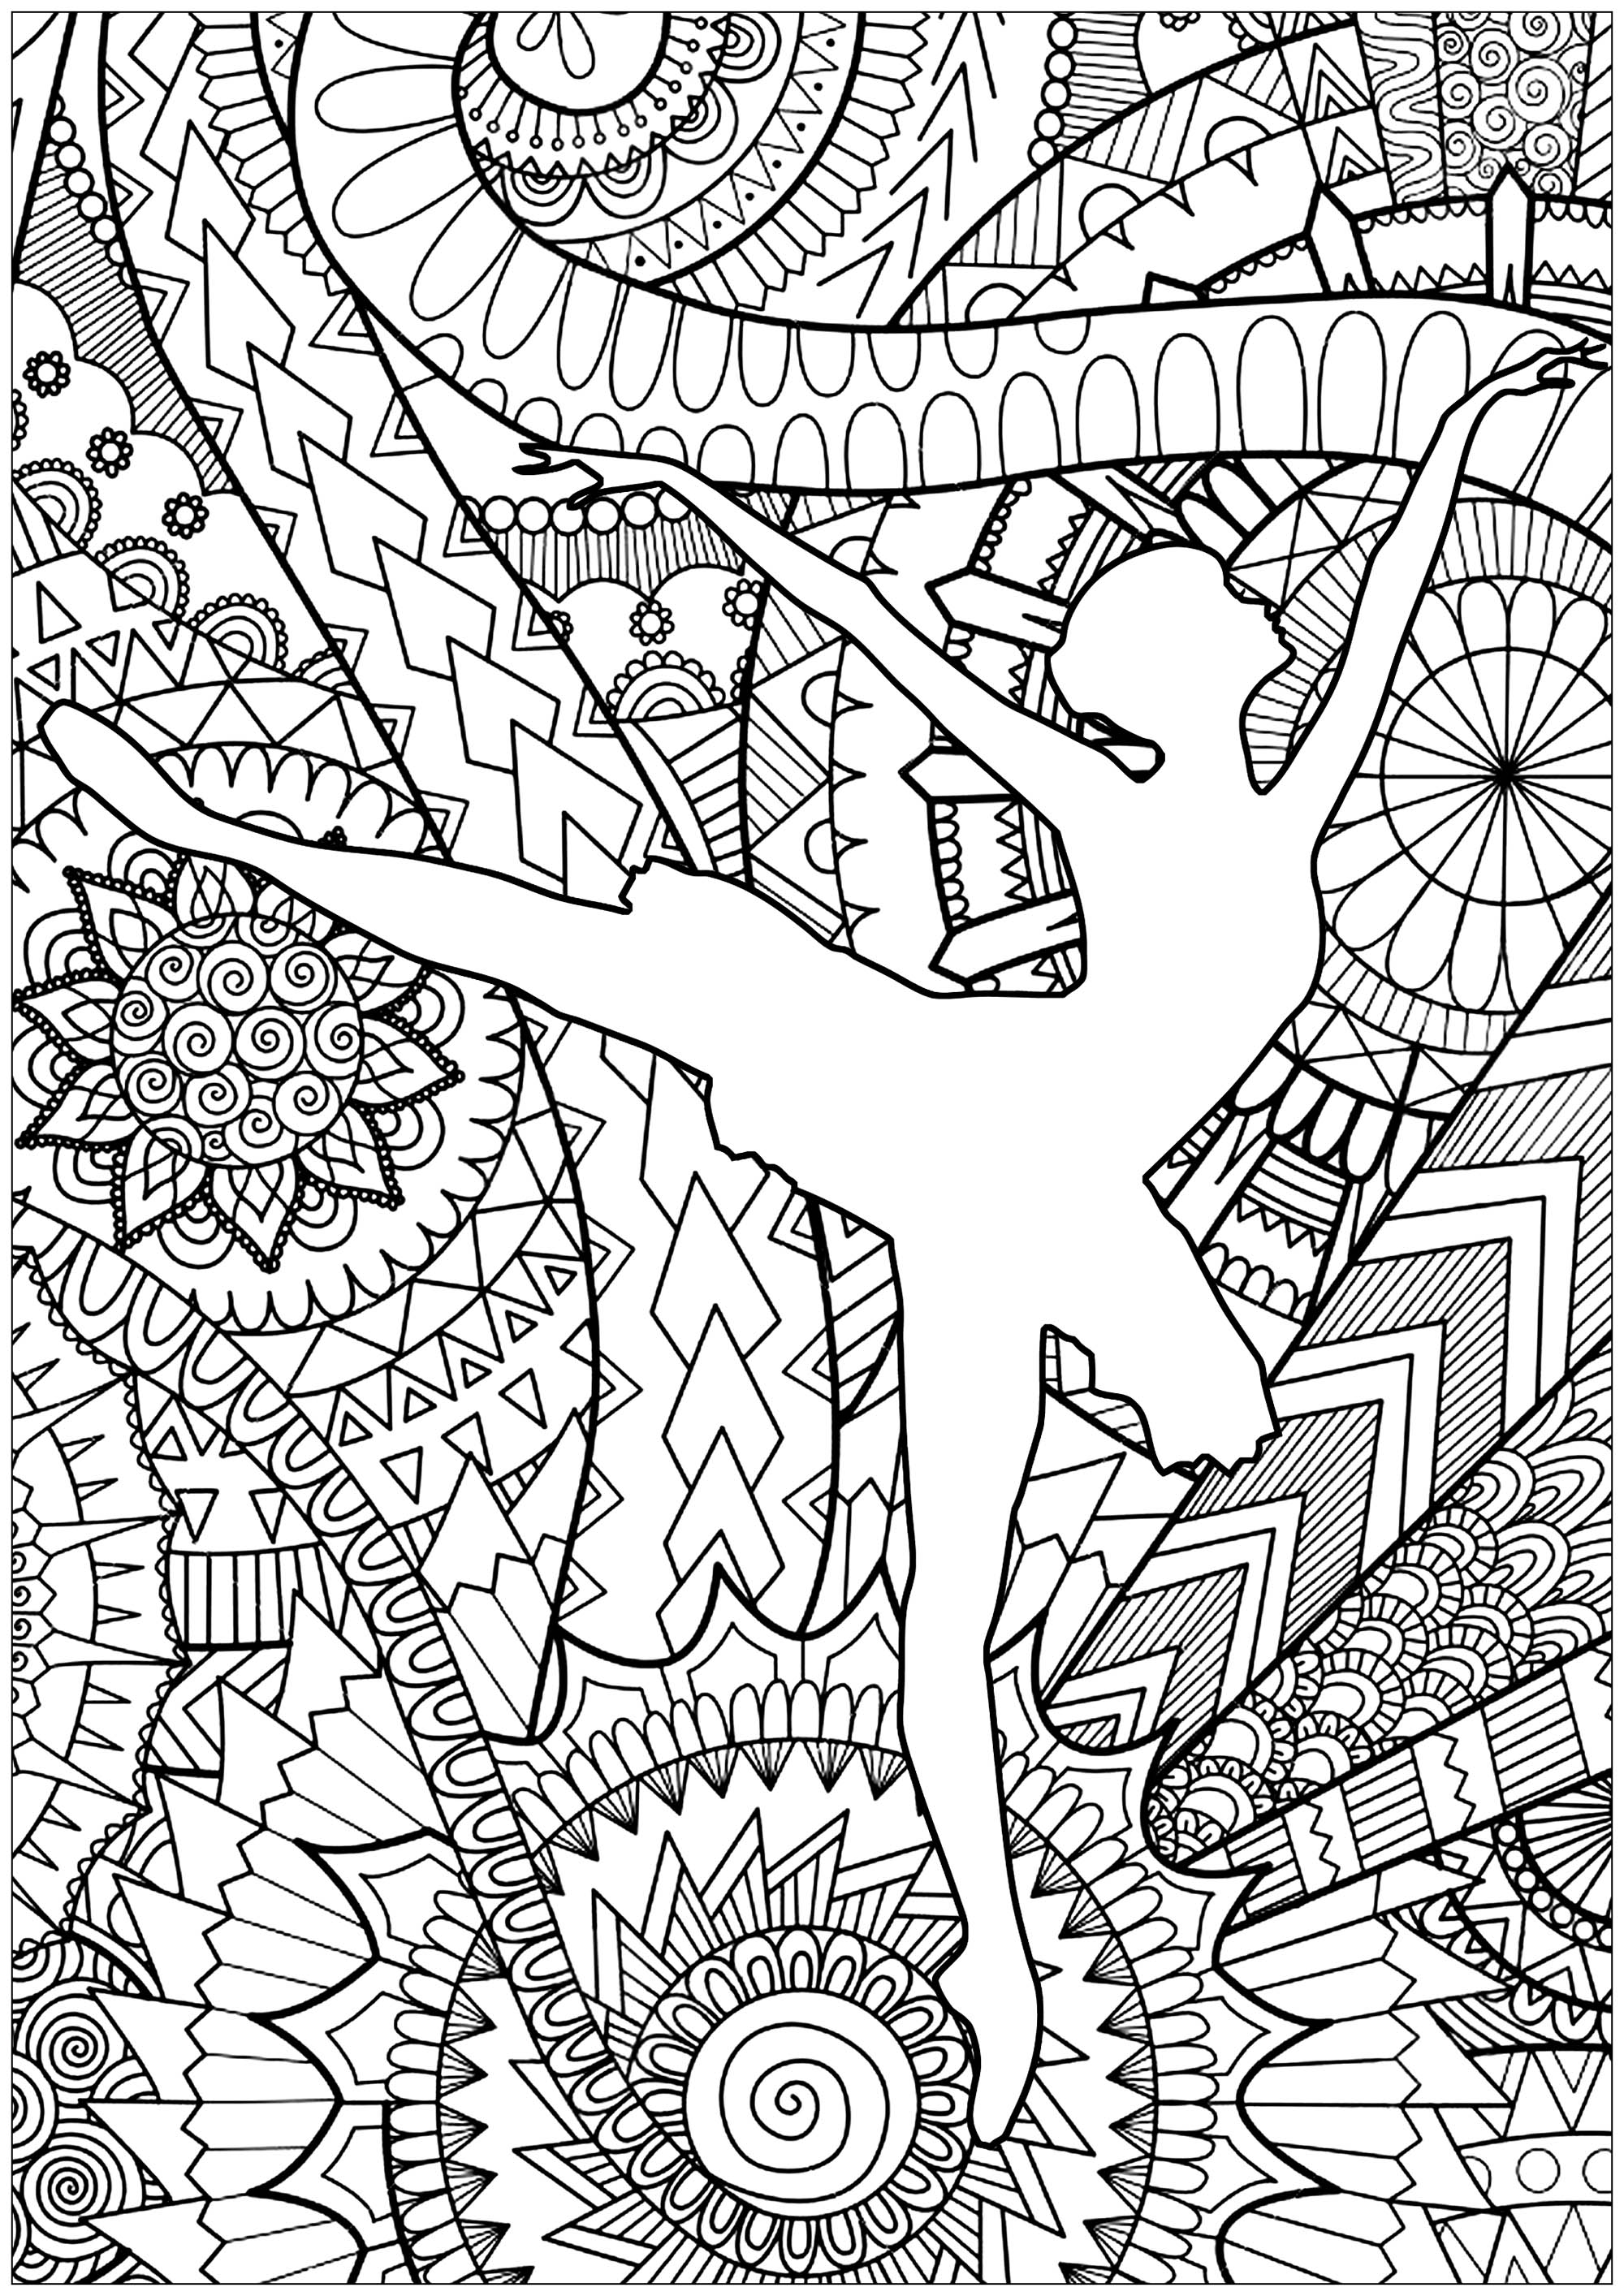 Dancing Coloring Pages - Coloring Home | 2828x2000